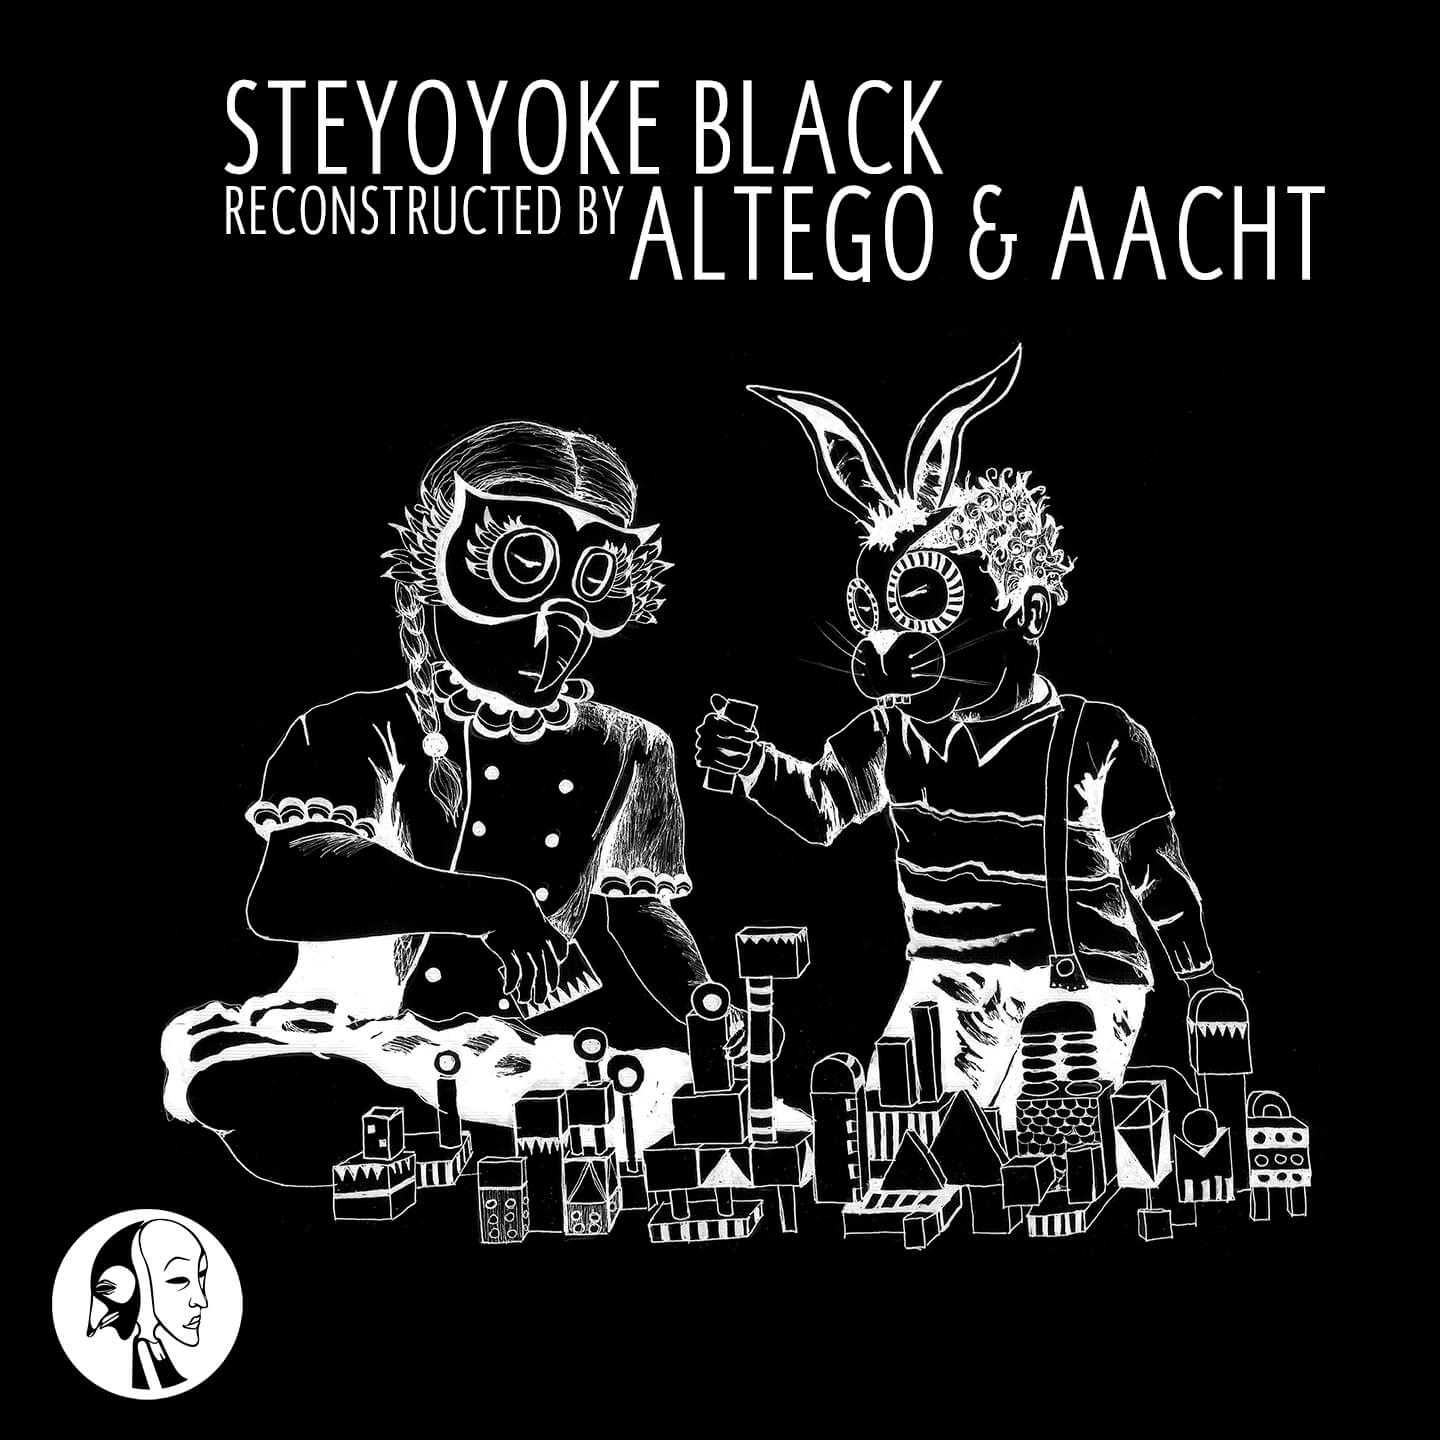 SYYKBLK025 - Steyoyoke Black - Reconstructed By Altego & Aacht